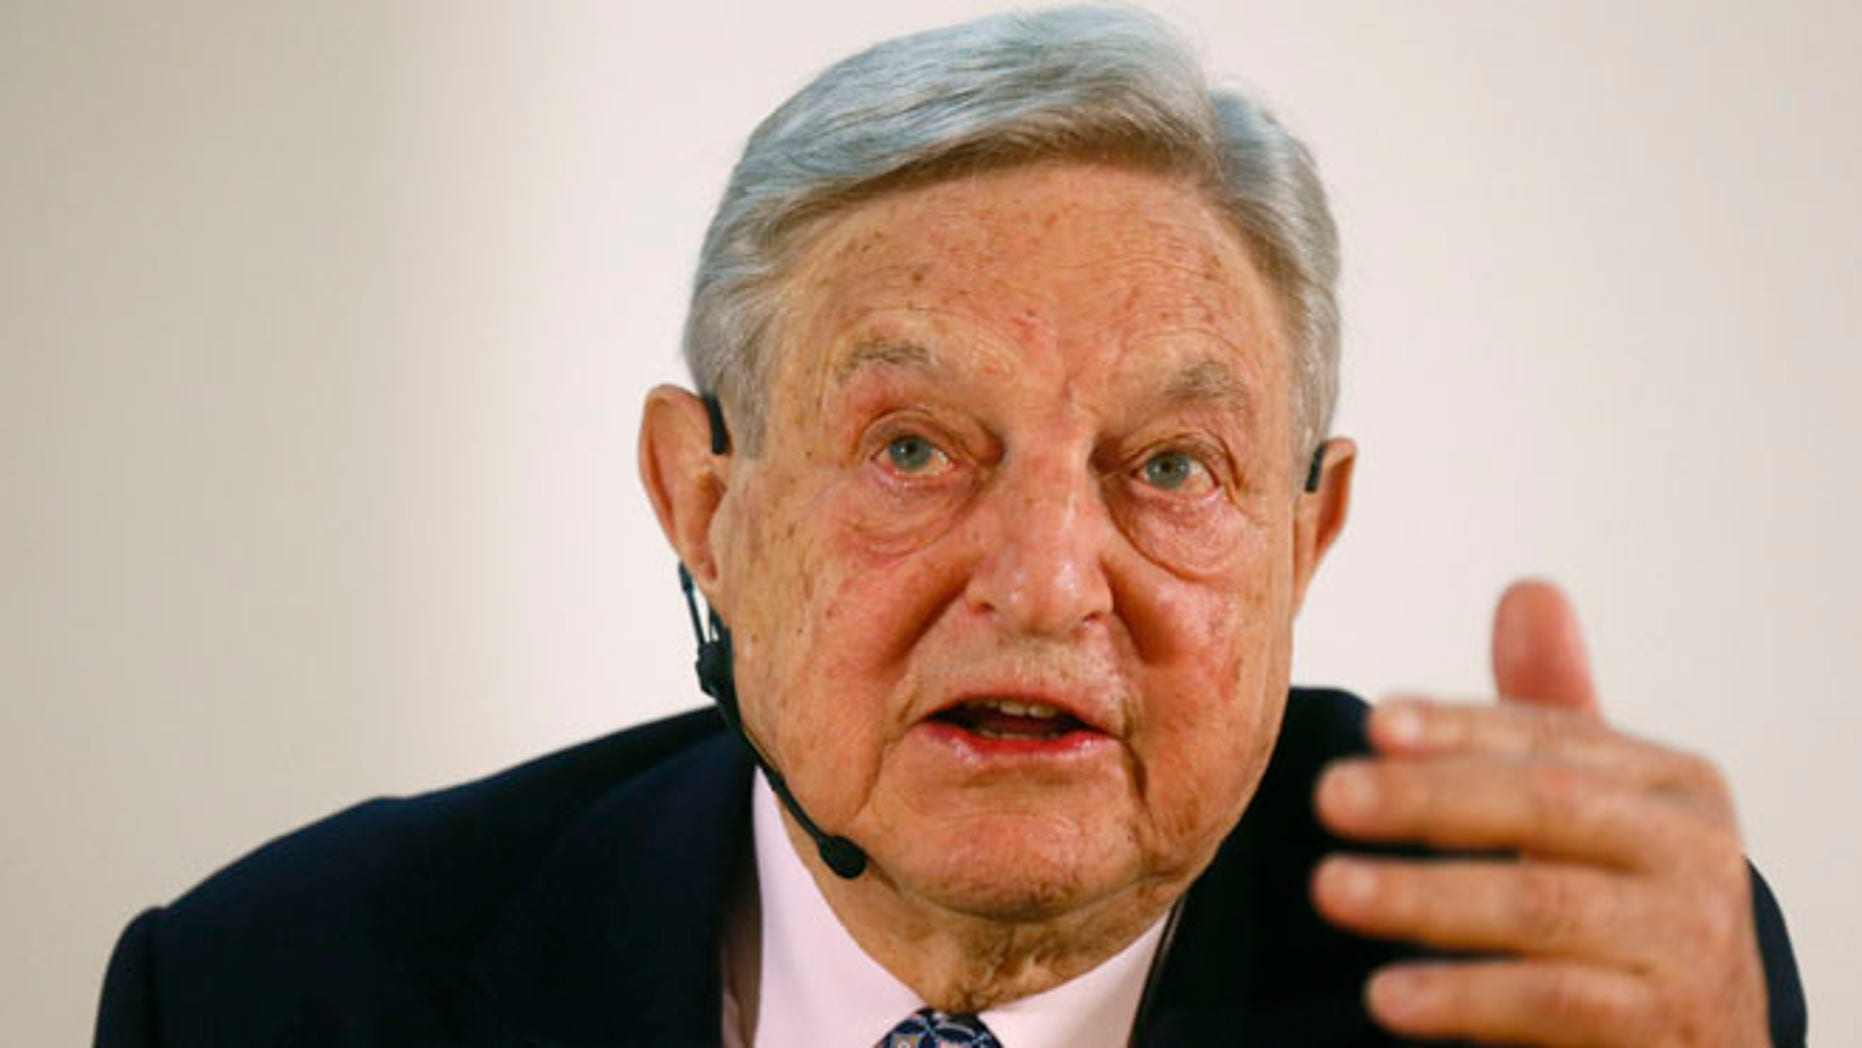 George Soros, Chairman of Soros Fund Management LLC during an economic speech in Frankfurt April 9, 2013.